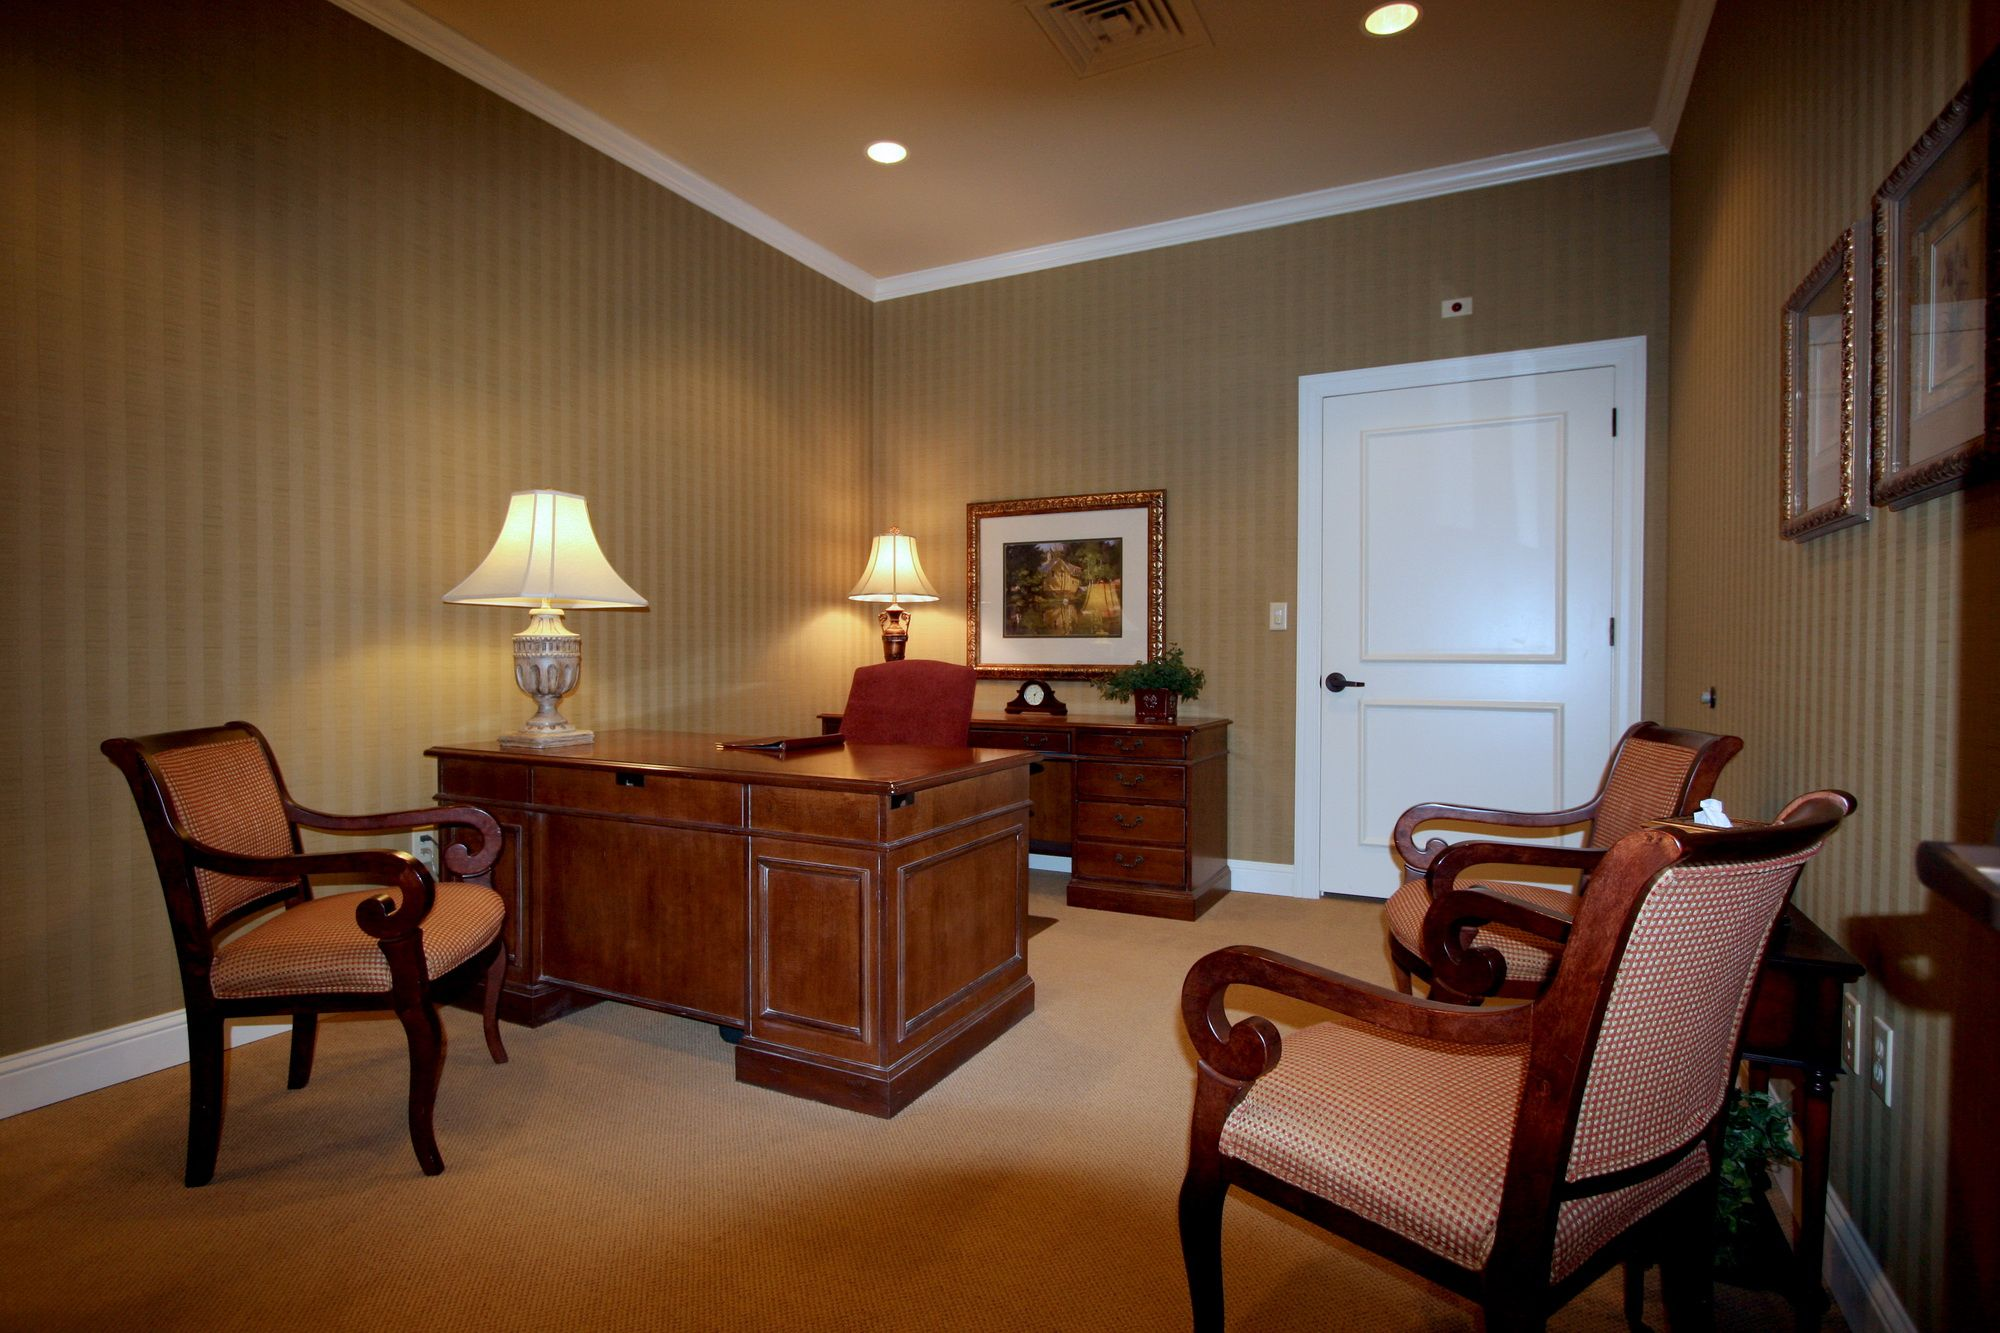 Image result for Funeral Home Interior Decorating | House ...